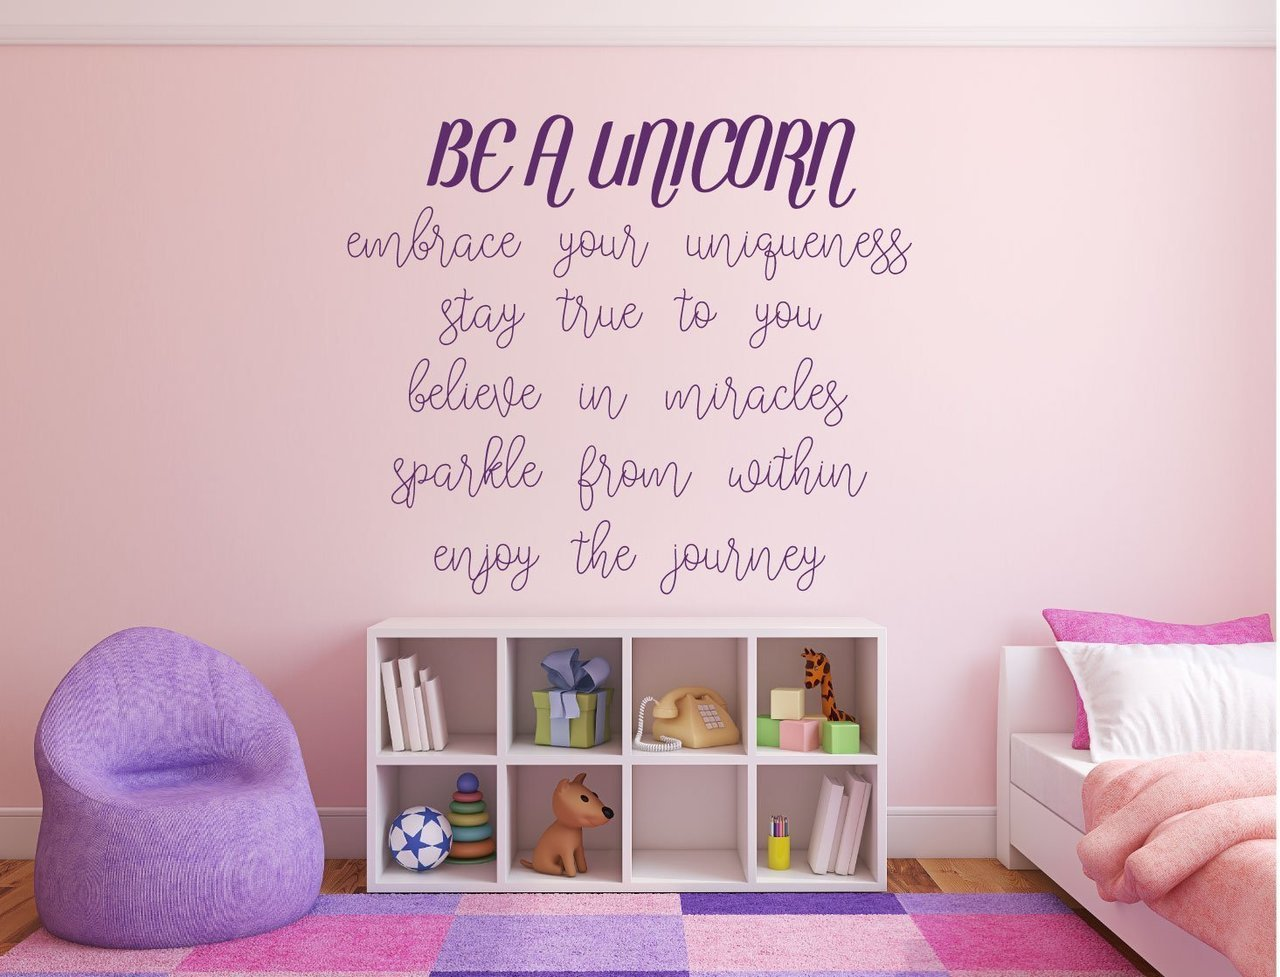 Unicorn Wall Decor - Be A Unicorn Embrace Your Uniqueness Stay True To You Believe In Miracles